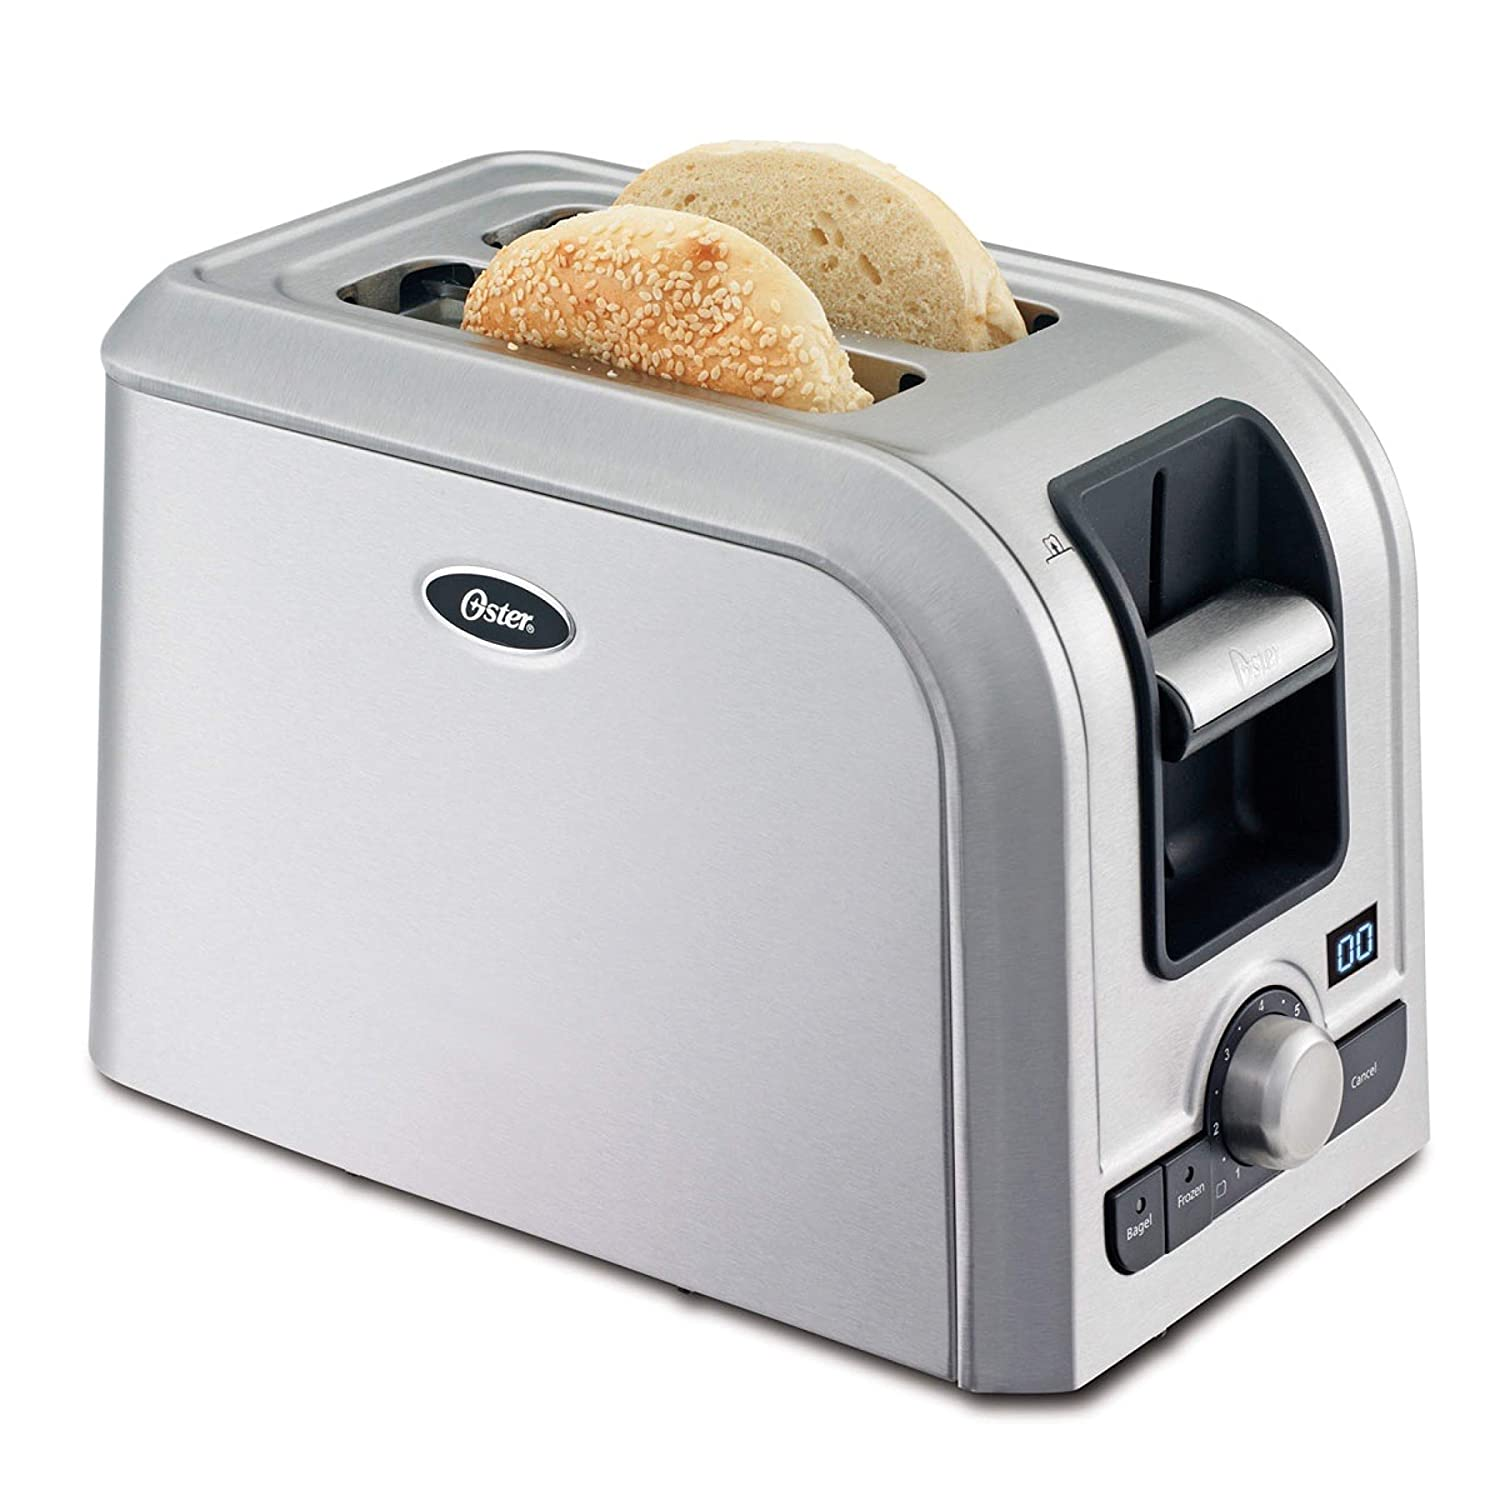 Oster 2-Slice Digital Countdown Toaster, Brushed Stainless Steel